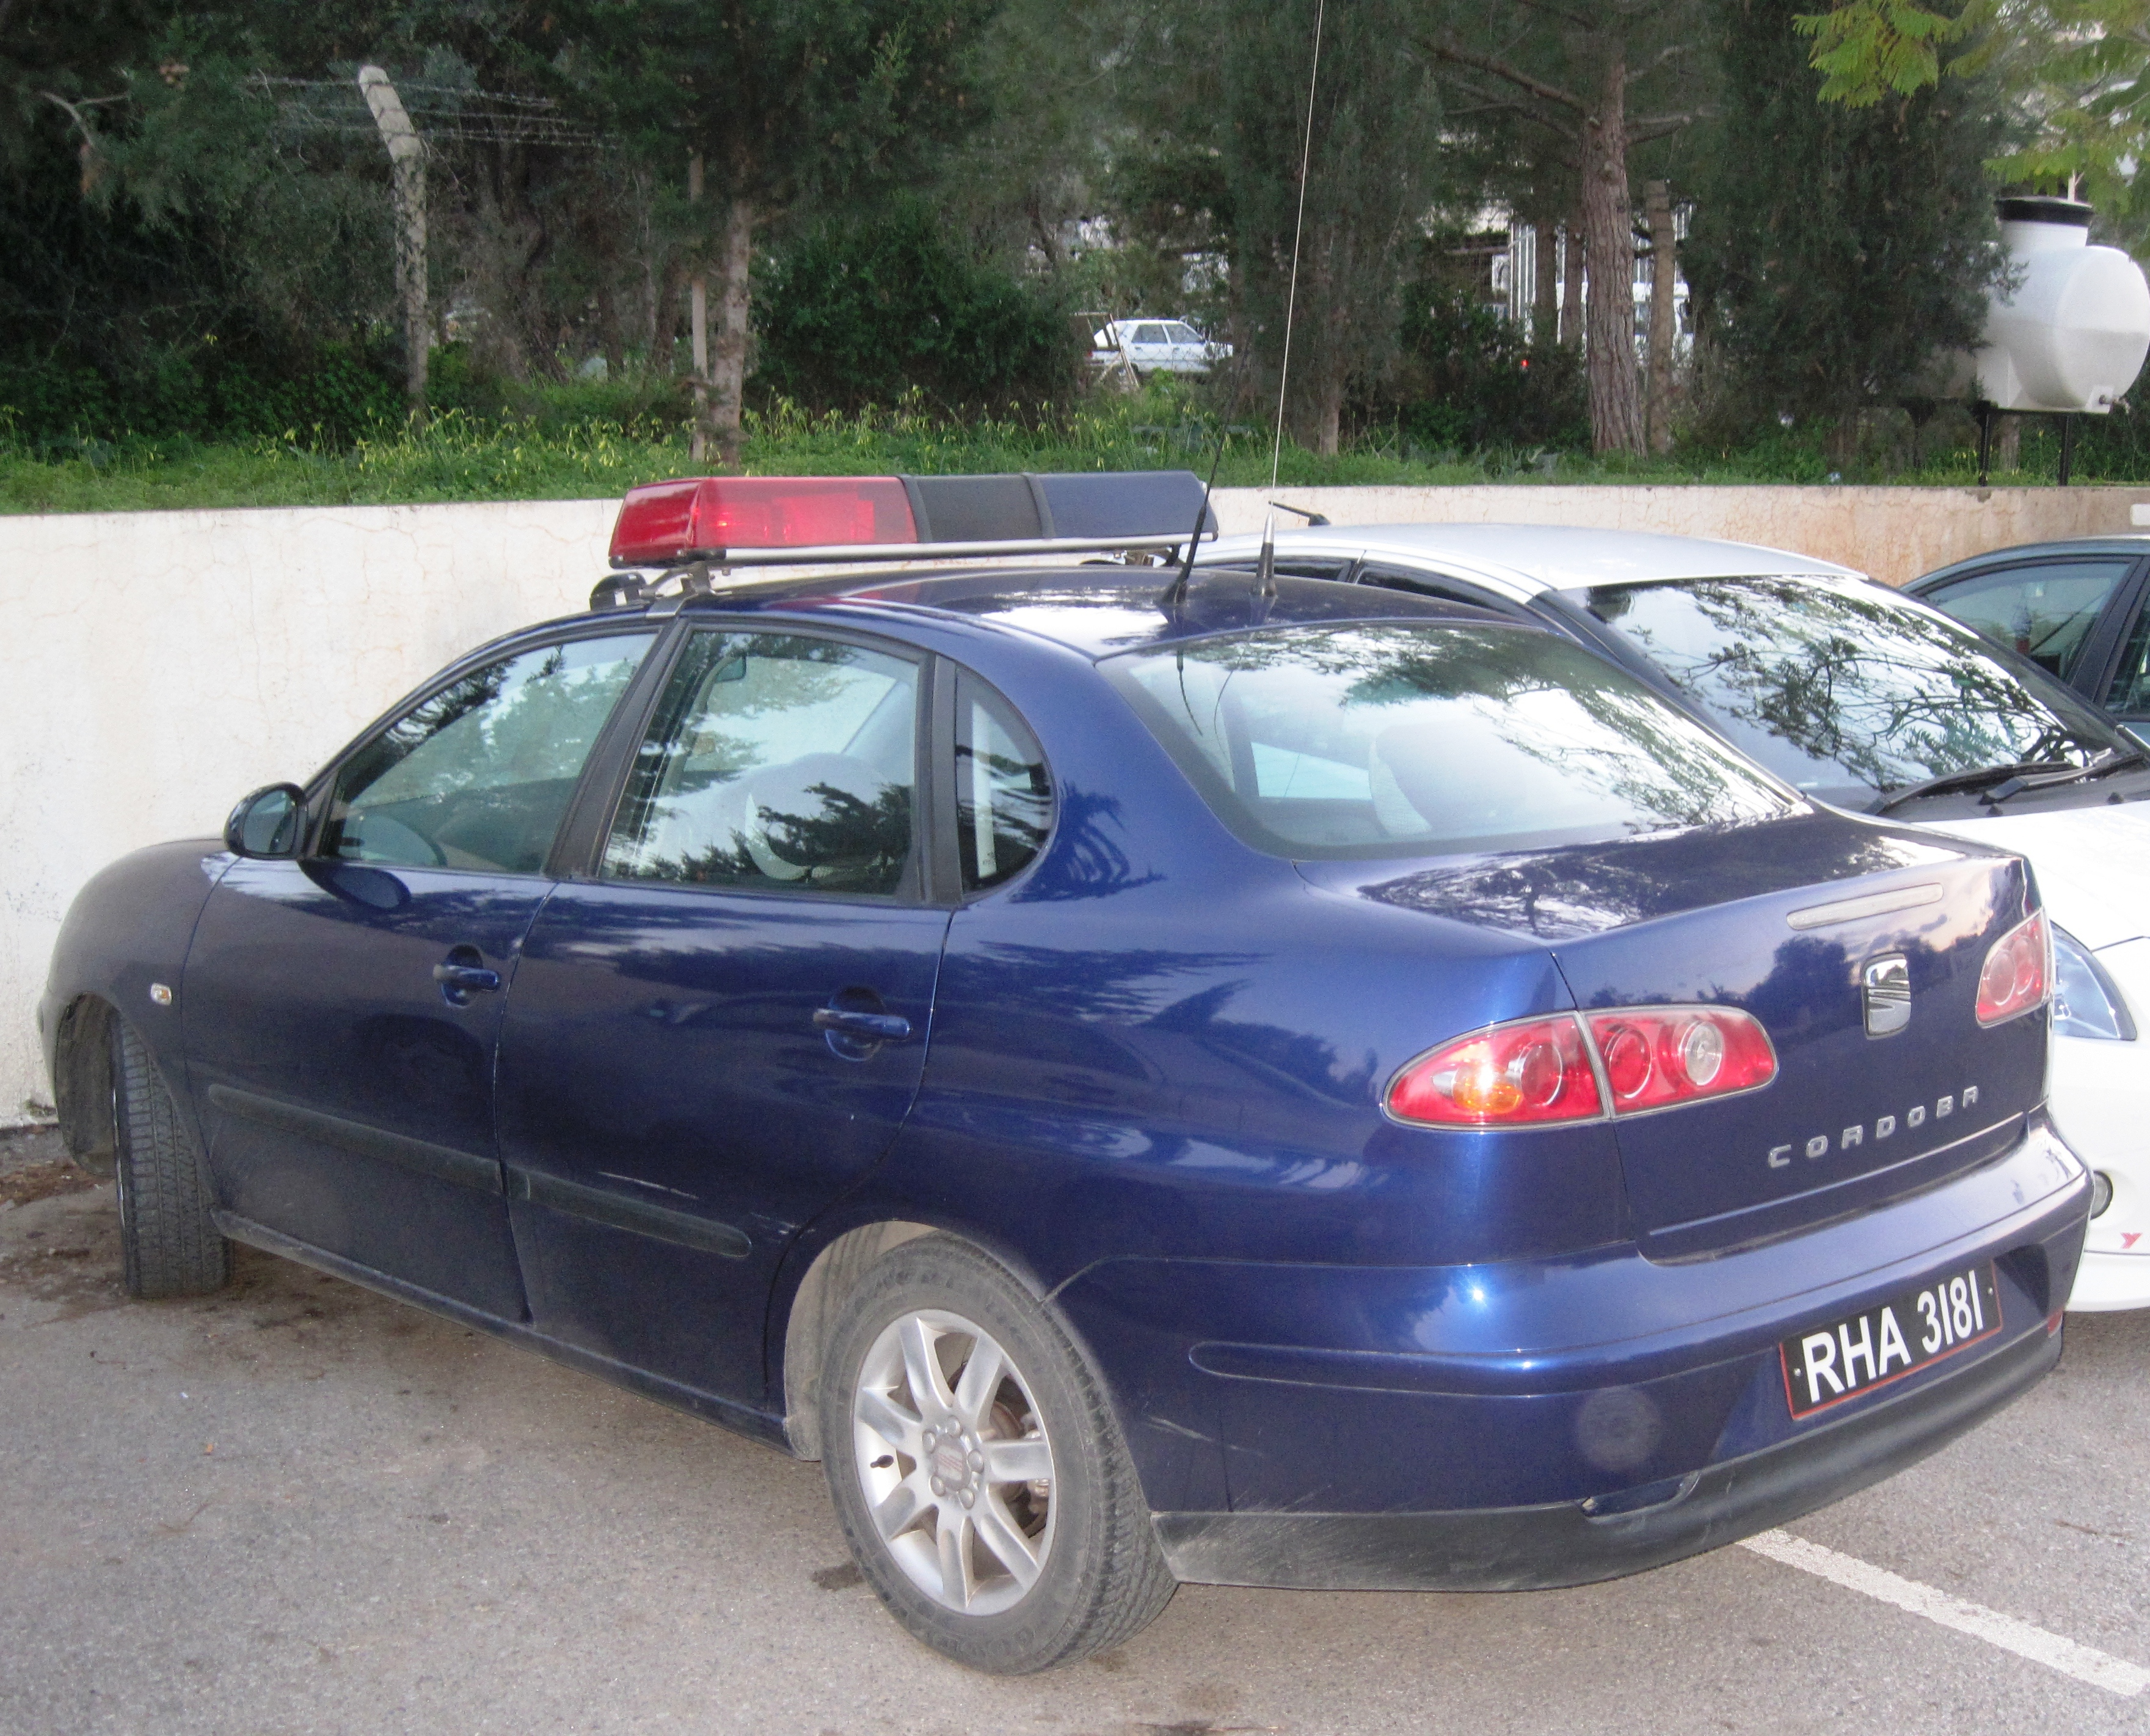 Cyprus Cars For Sale Limassol